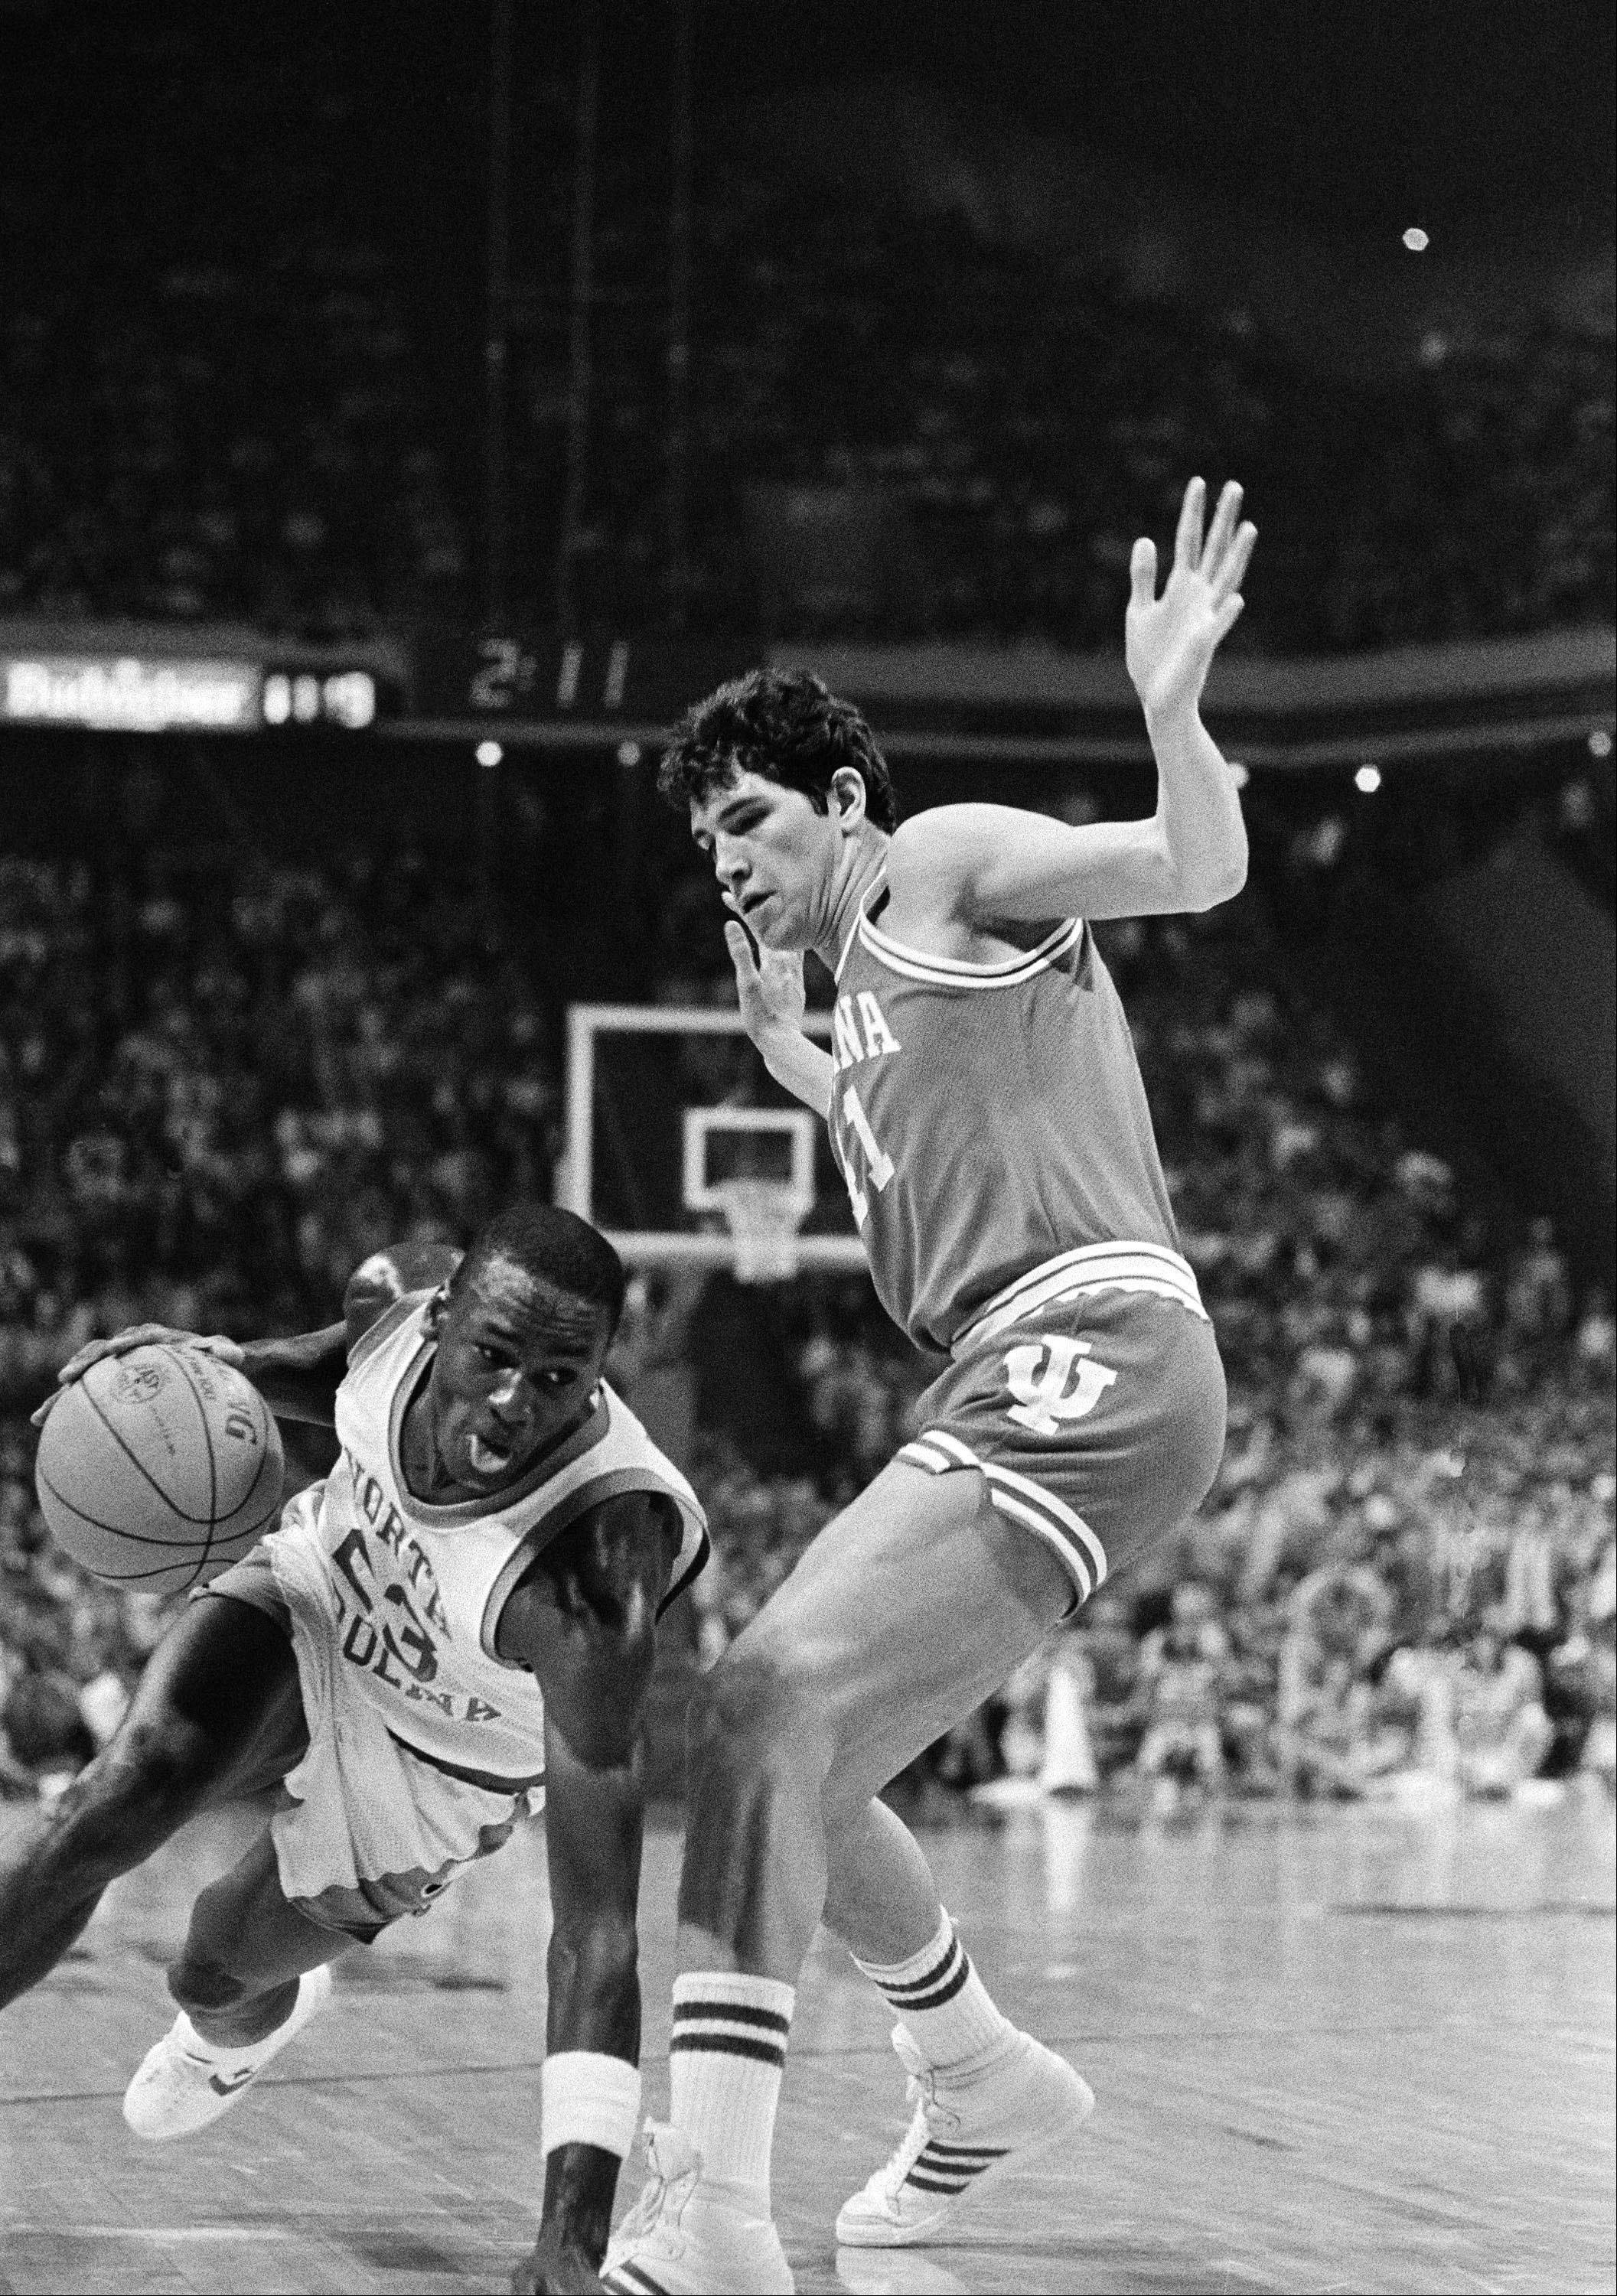 North Carolina forward Michael Jordan sticks out a hand and his tongue Thursday March 23, 1984 trying to drive past Indiana forward Mike Giomi on March 23, 1984 at Atlanta Omni. Indiana won the NCAA East Regional semifinal game, 72-68, and will meet Virginia Saturday.